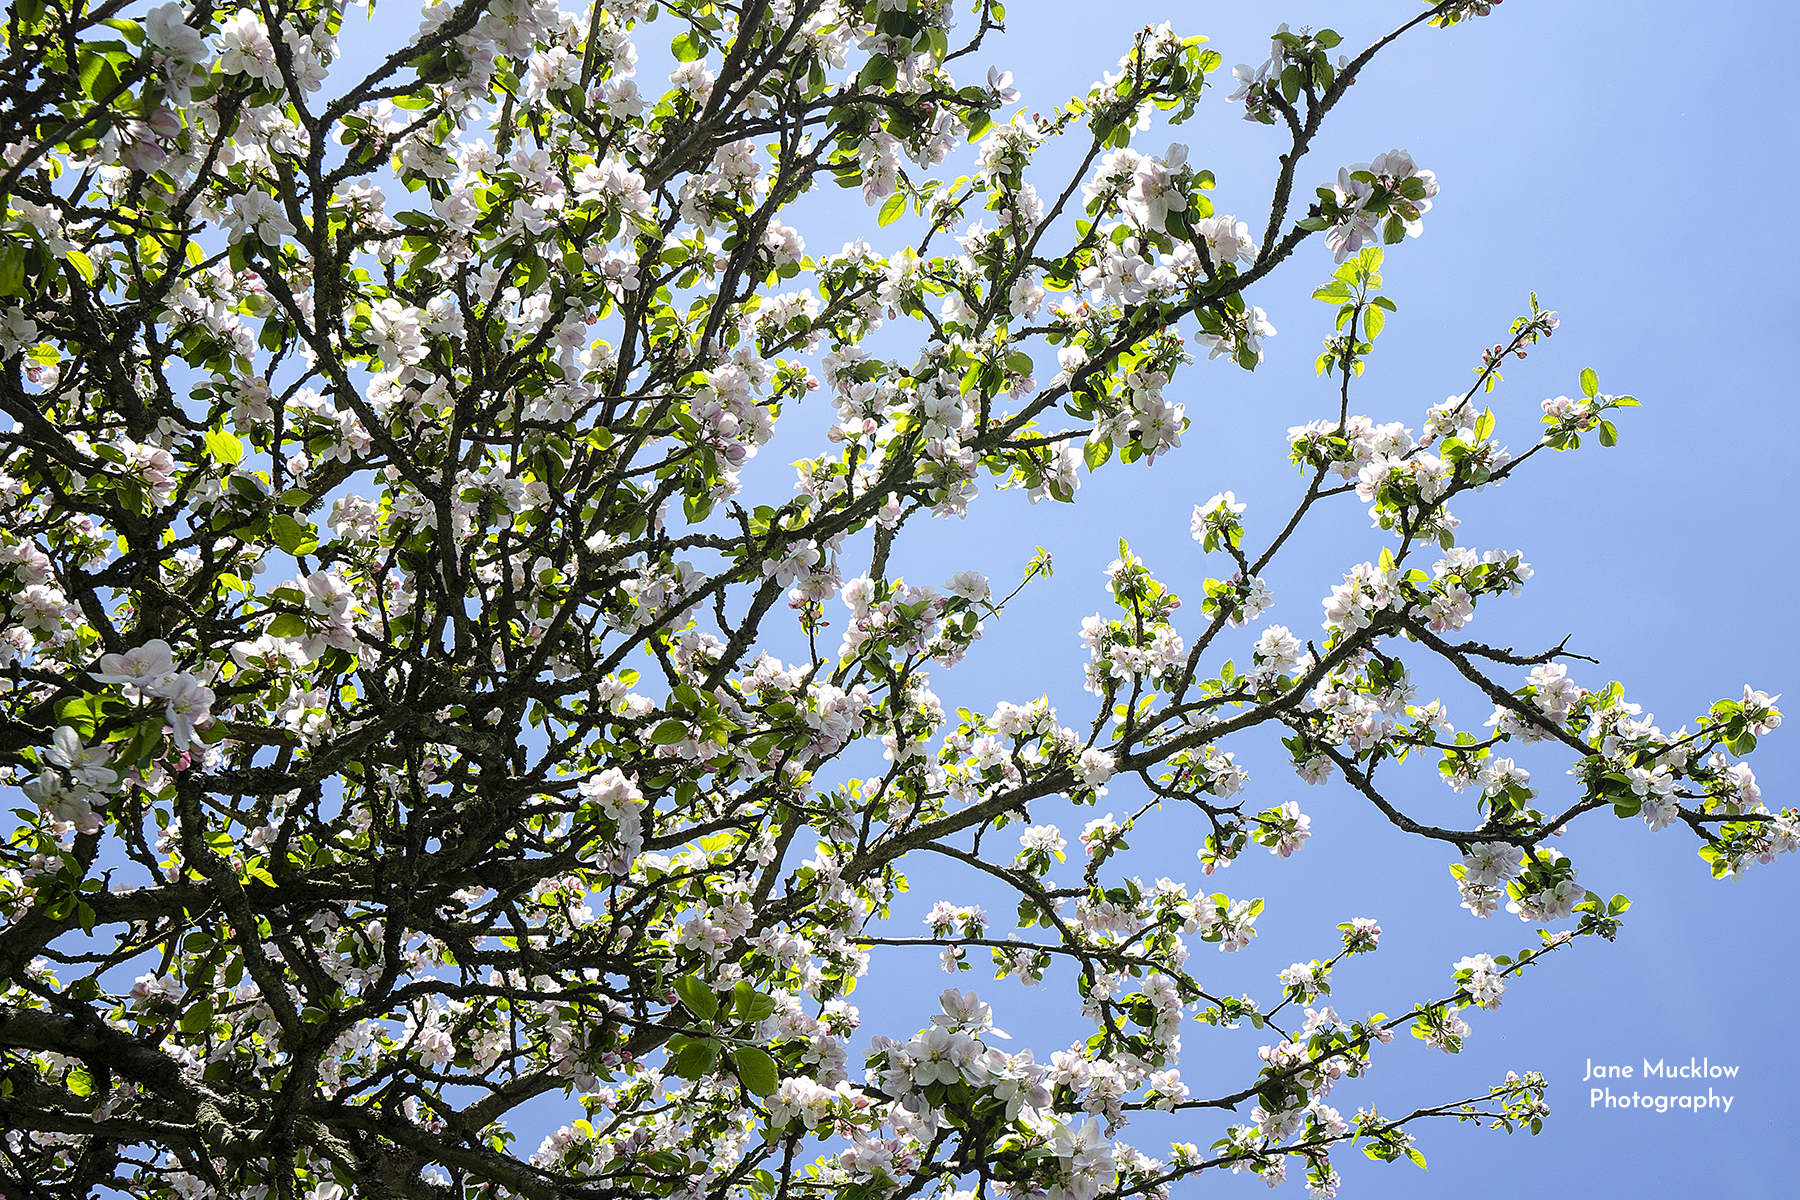 Photo looking up at Kent apple blossom by Jane Mucklow